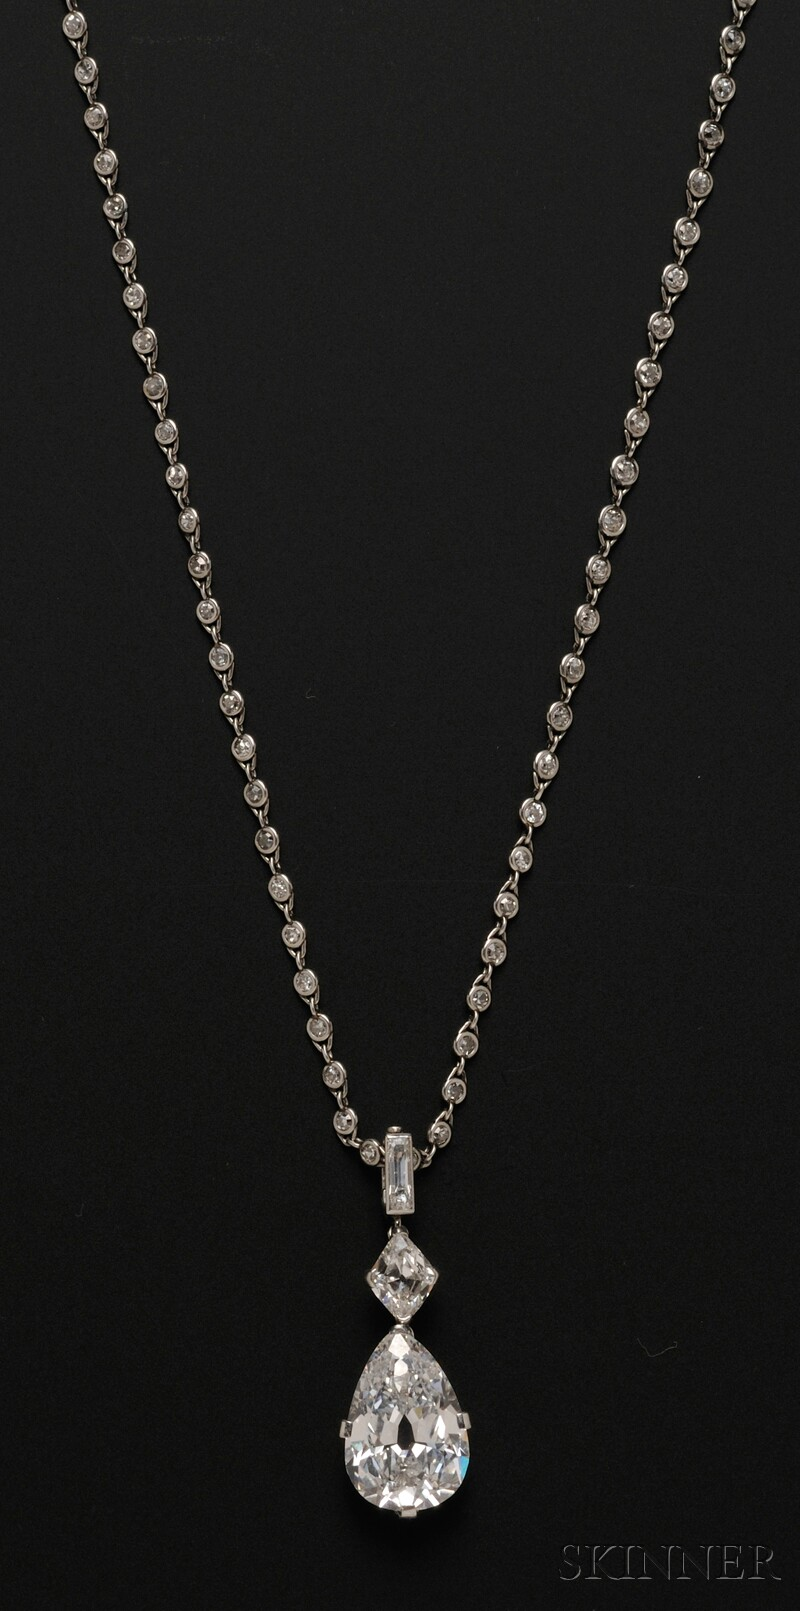 Jewelry Auctions | Consign Fine Jewelry | Skinner Auctioneers & Appraisers | Skinner Auctioneers